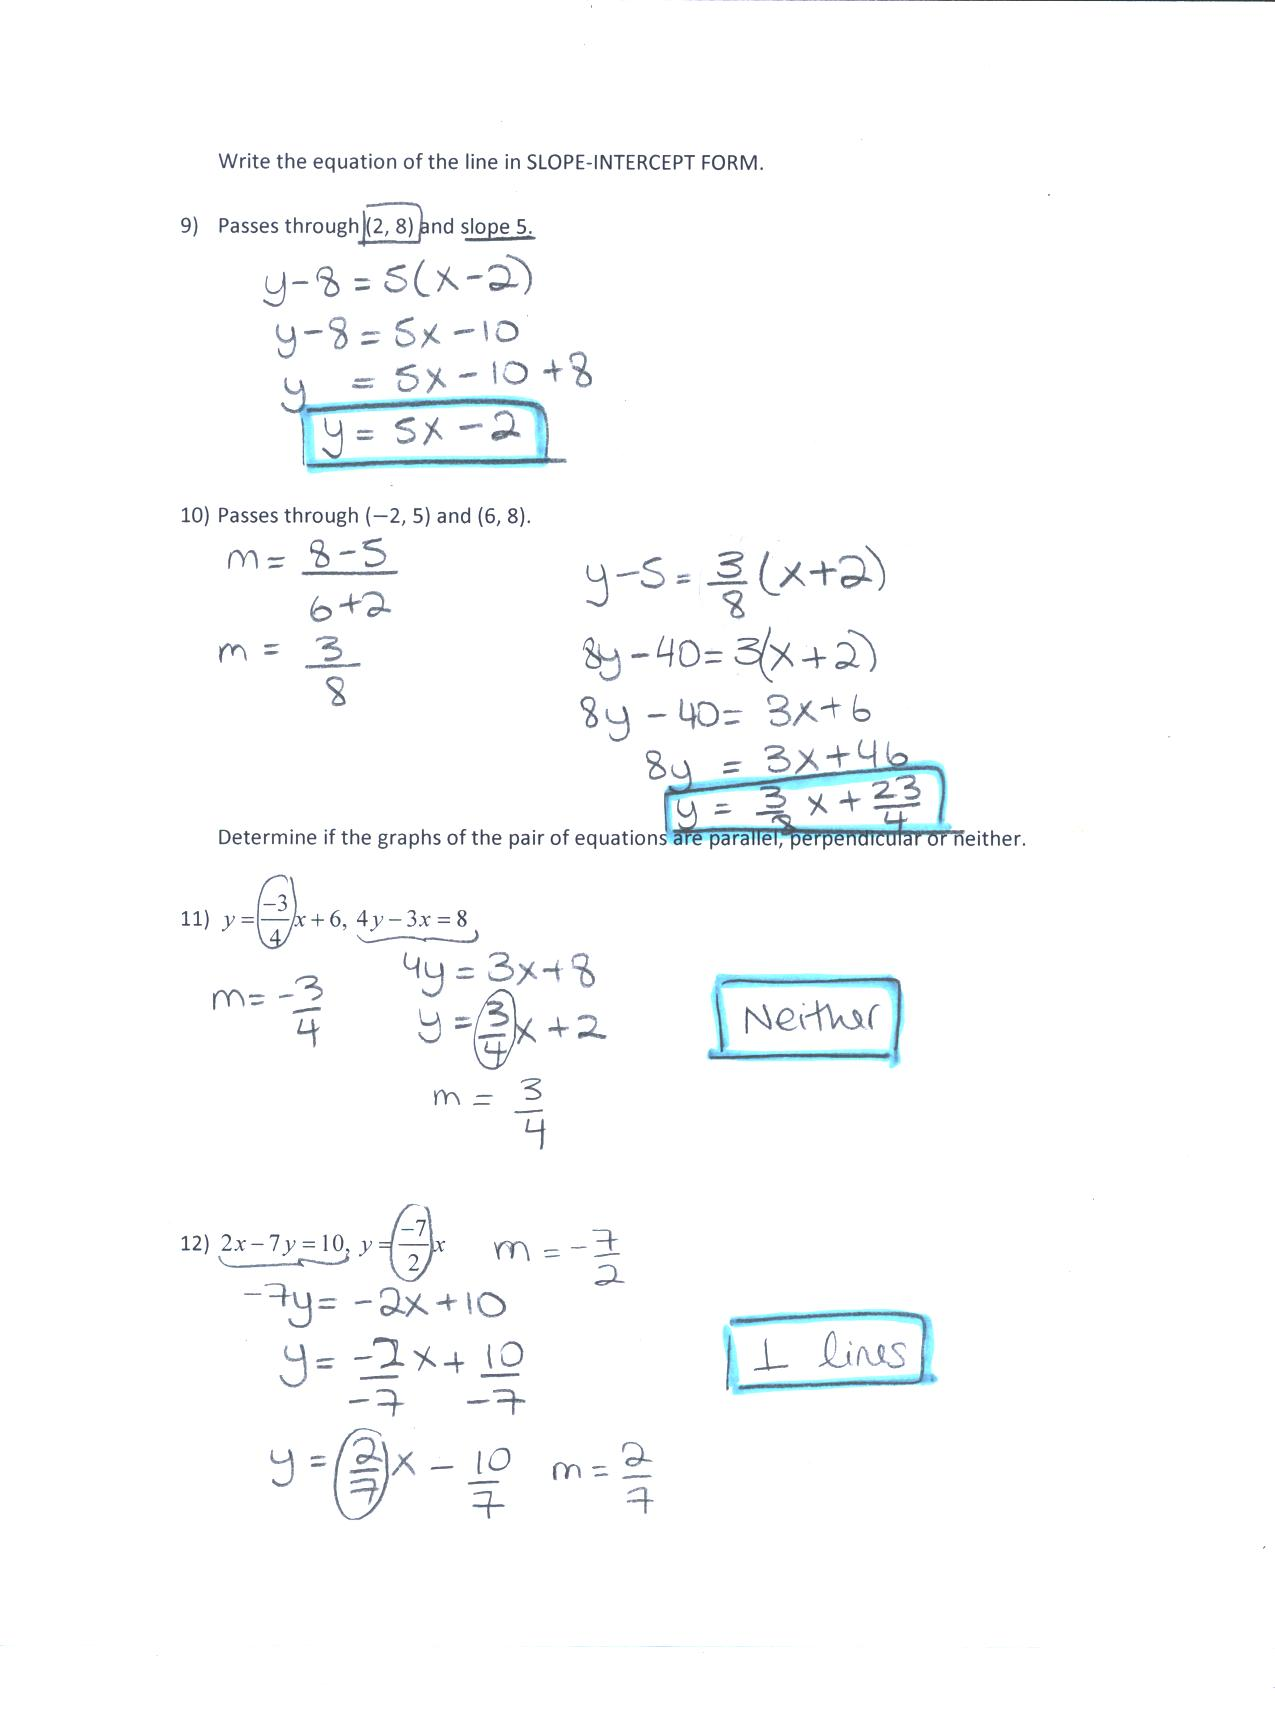 worksheet Adding And Subtracting Polynomials Worksheet adding and subtracting monomials worksheet sharebrowse pictures worksheet